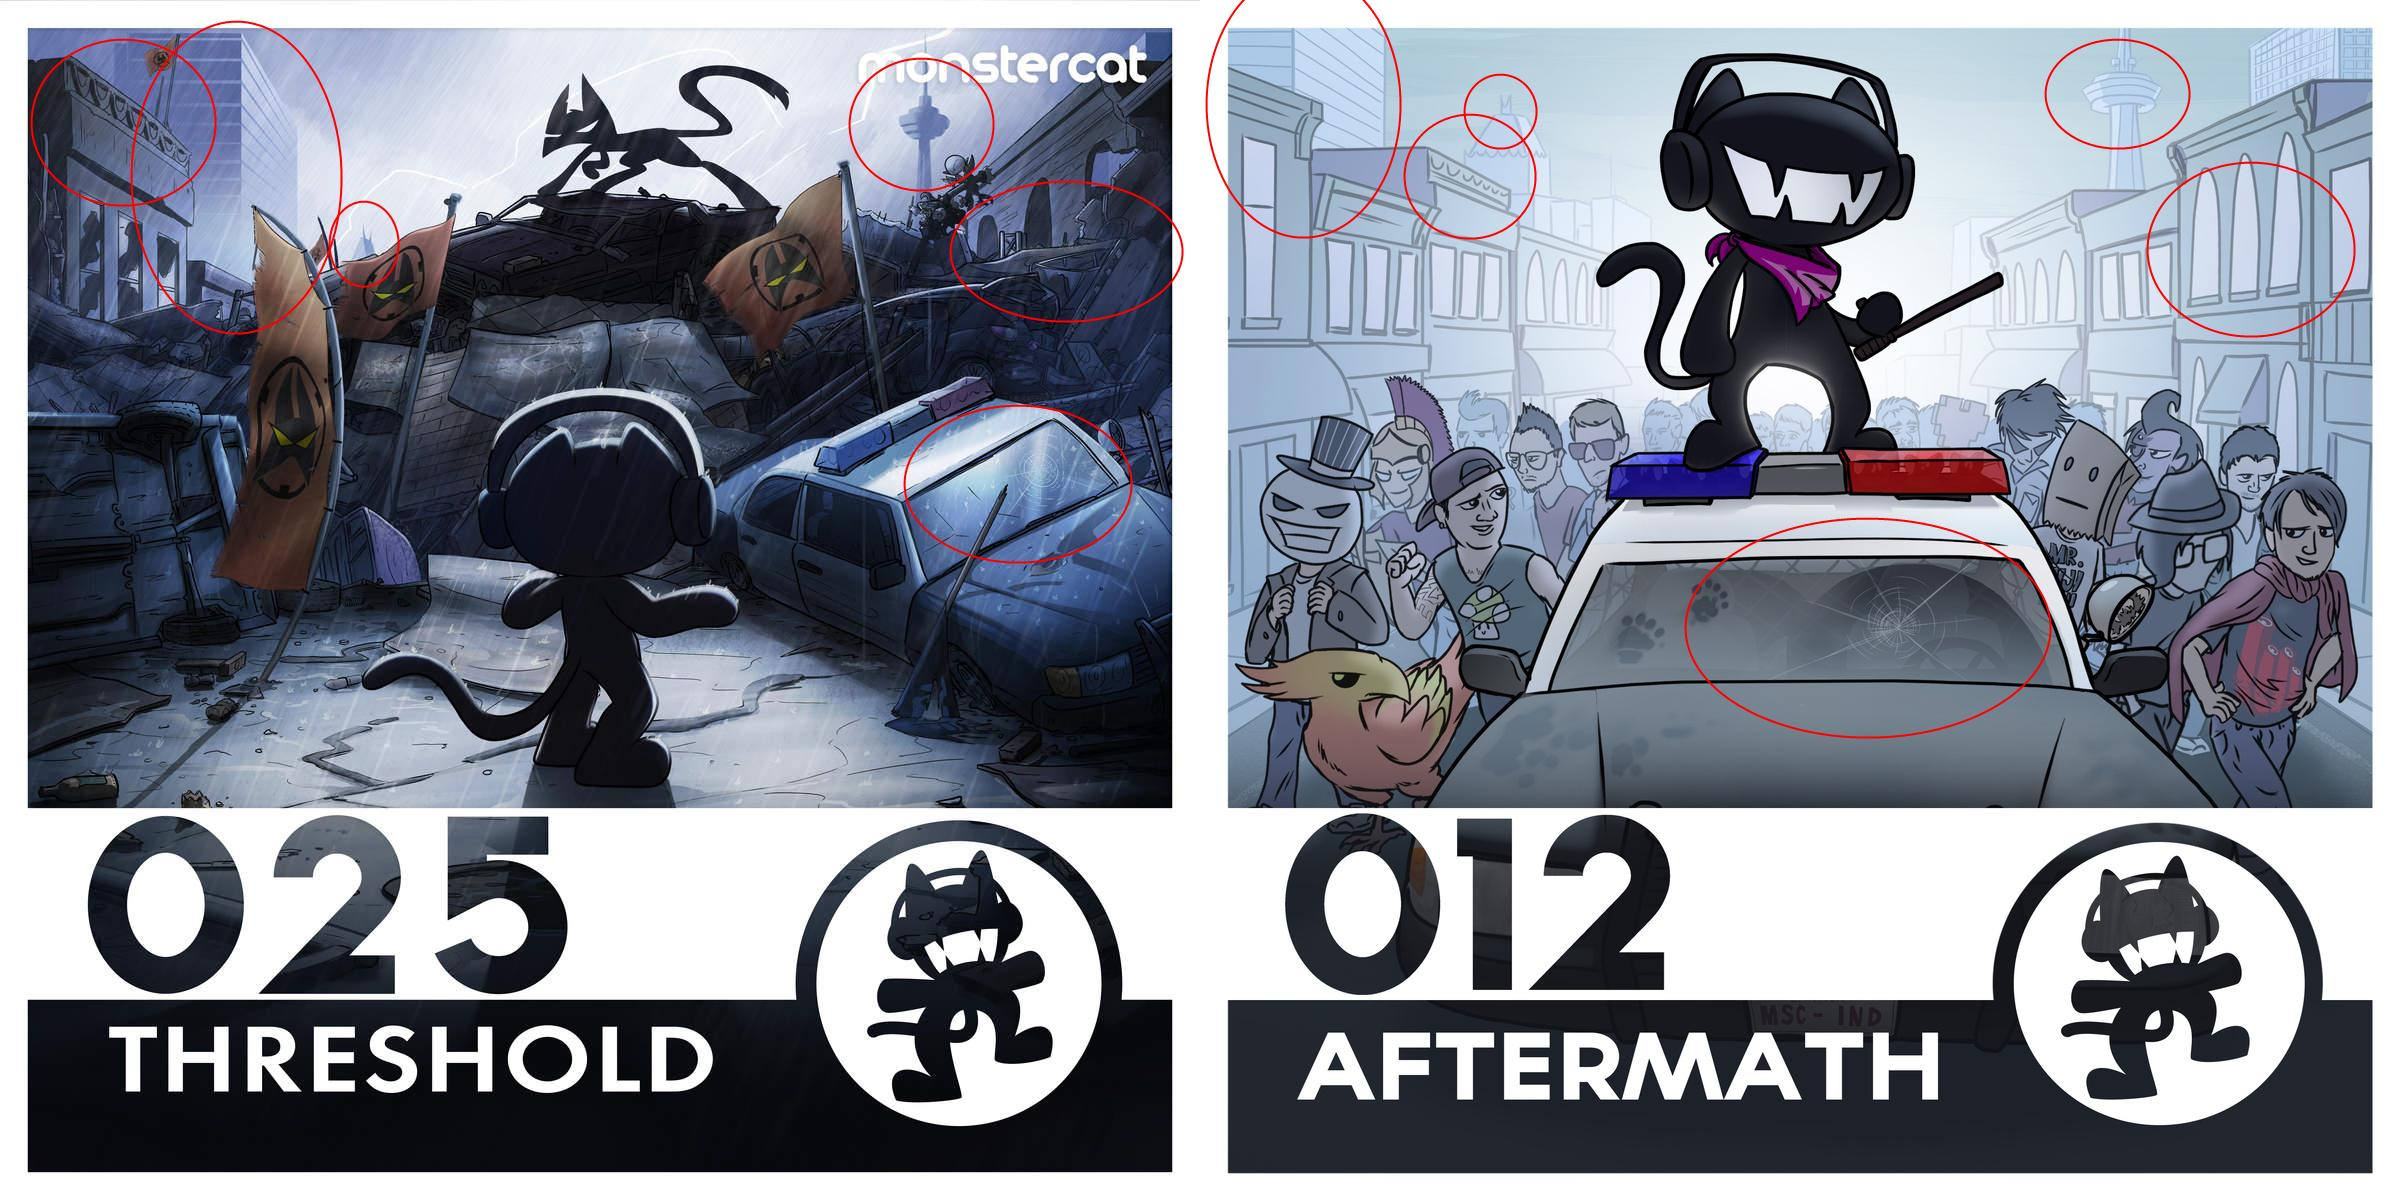 monstercat story